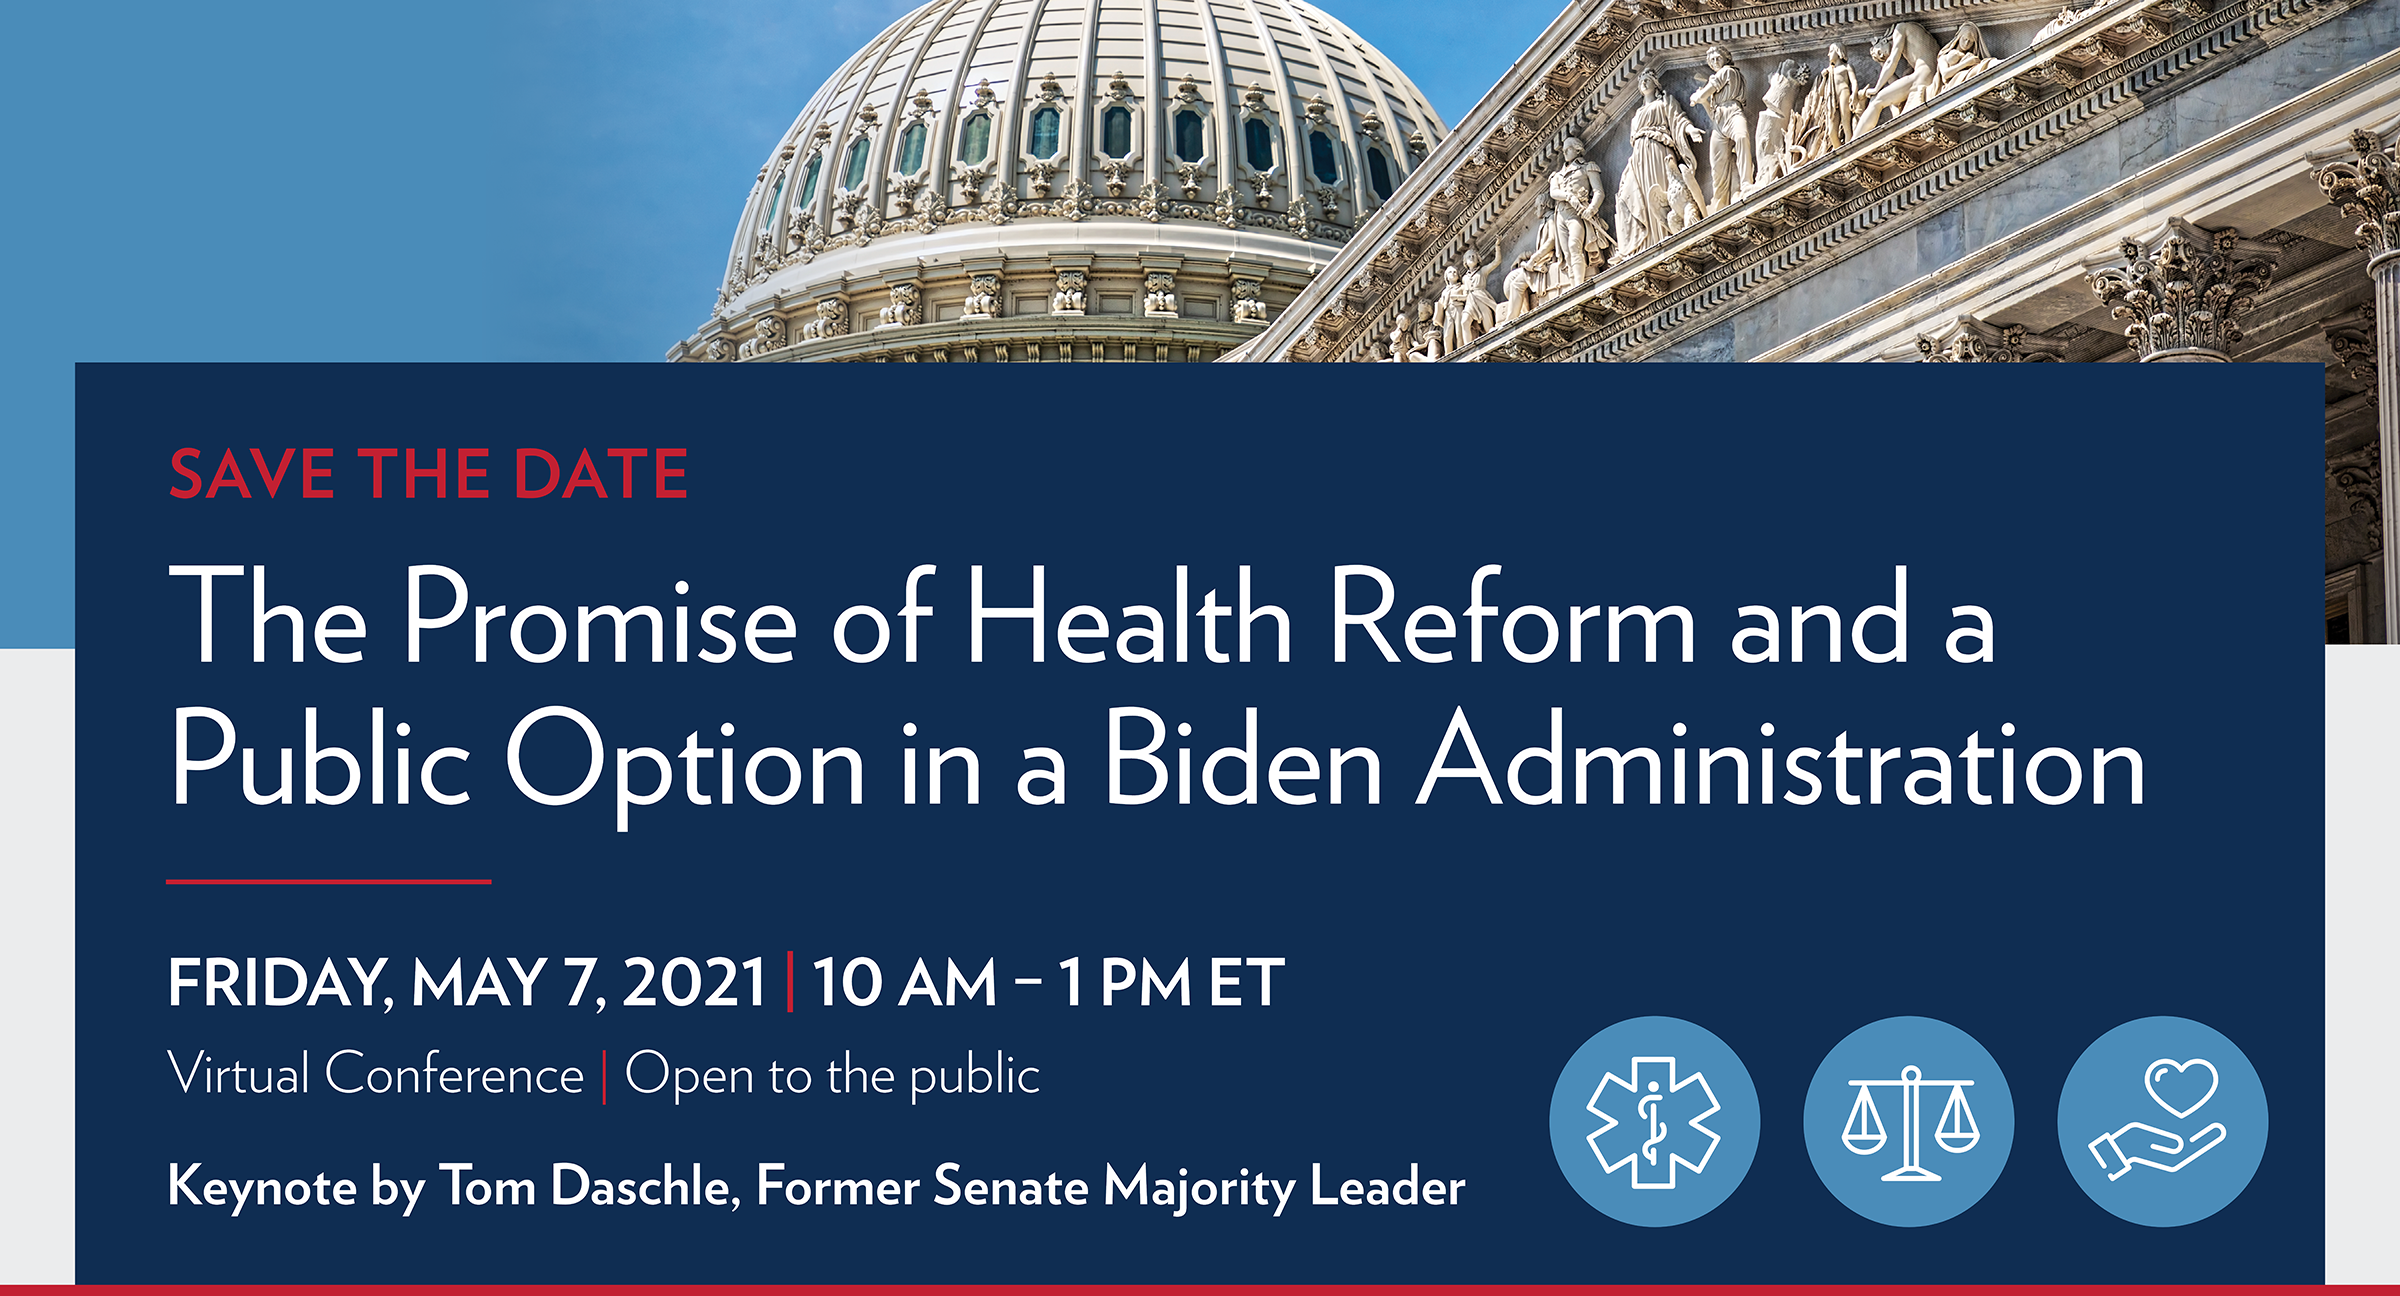 Penn LDI The Promise of Health Reform Conference